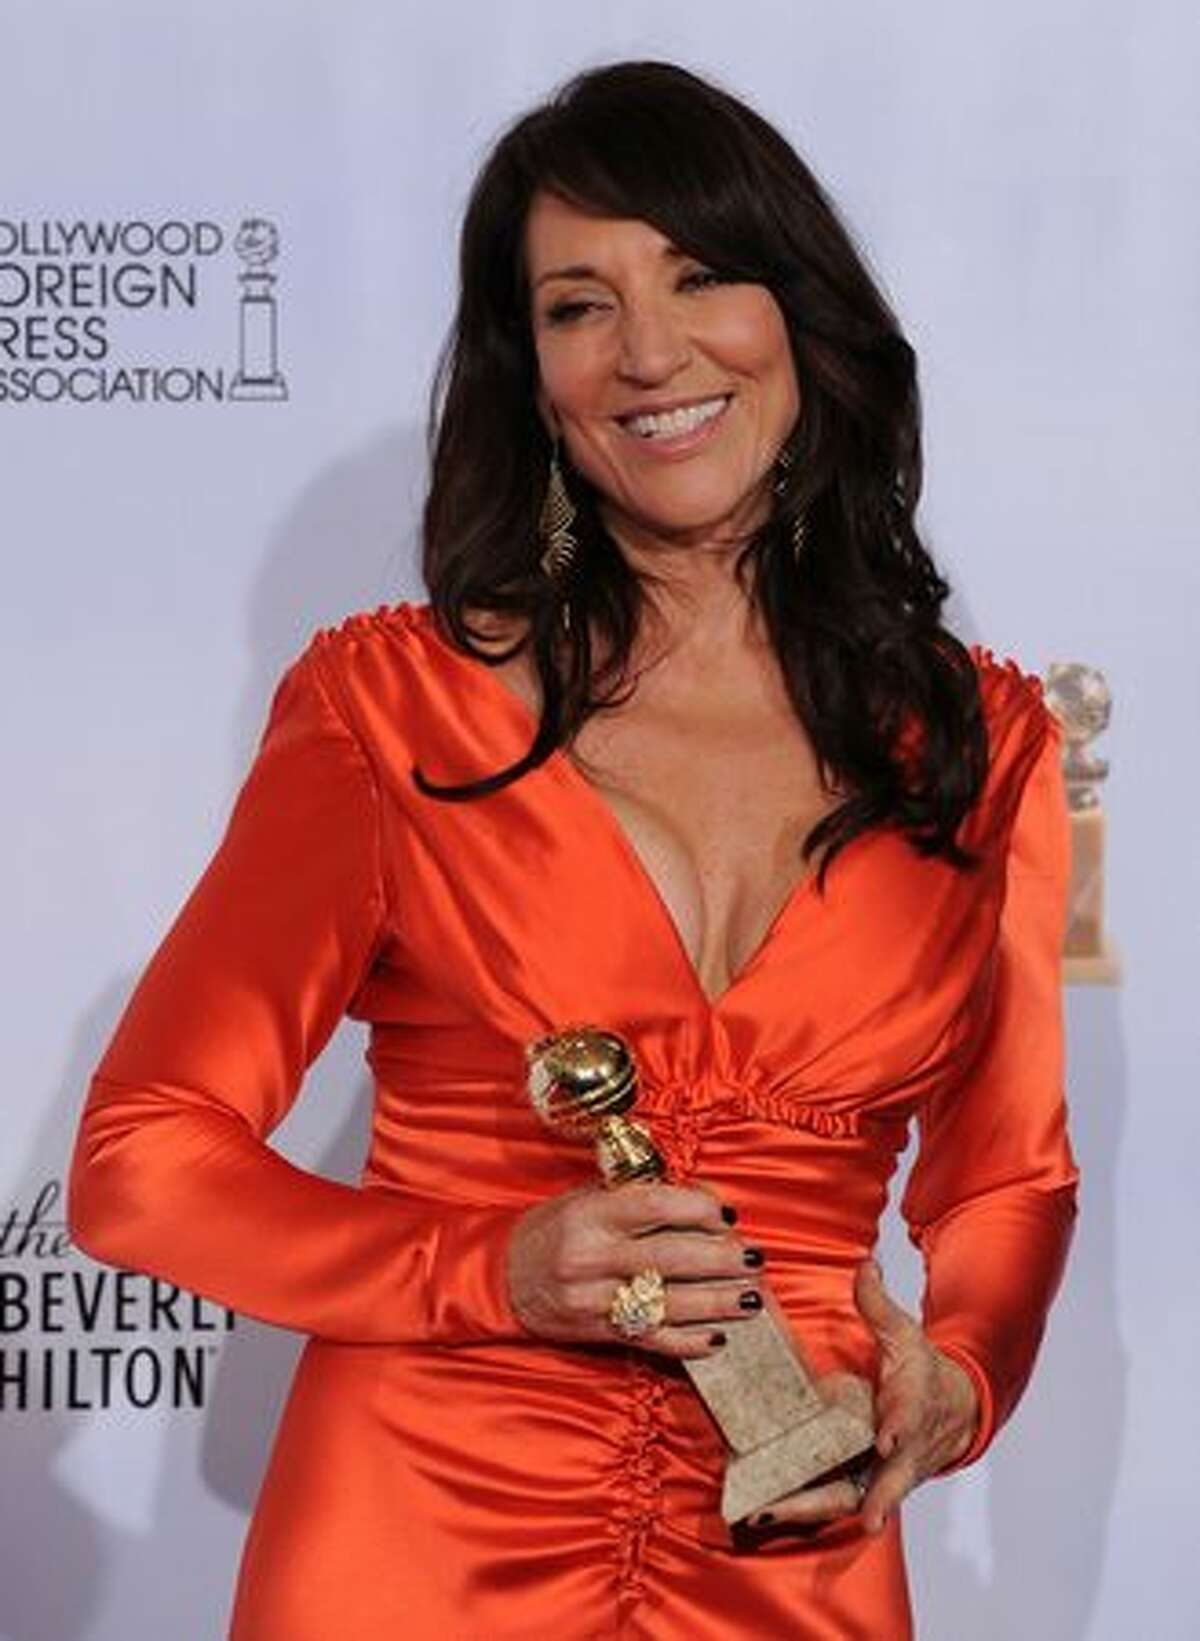 Actress Katey Sagal poses with her award for Best Performance by an Actress In A Television Series (Drama) for